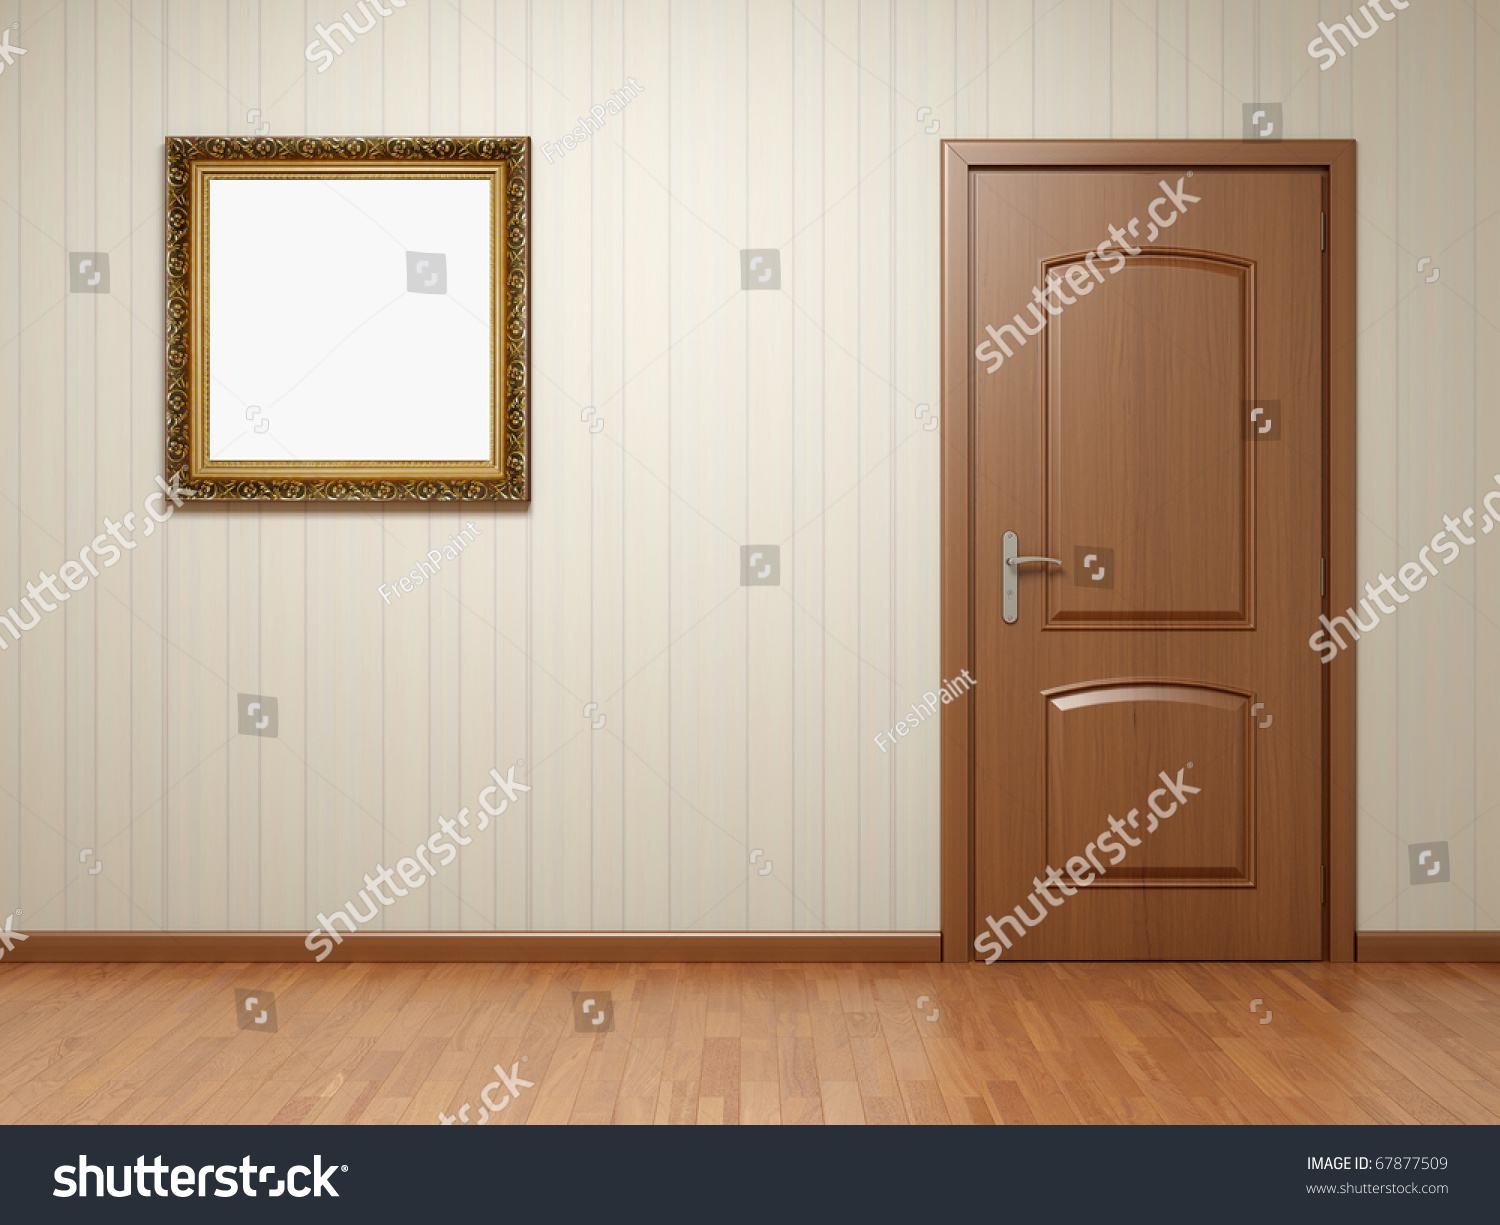 Empty room with wooden door and frame on striped wallpaper for Room door frame